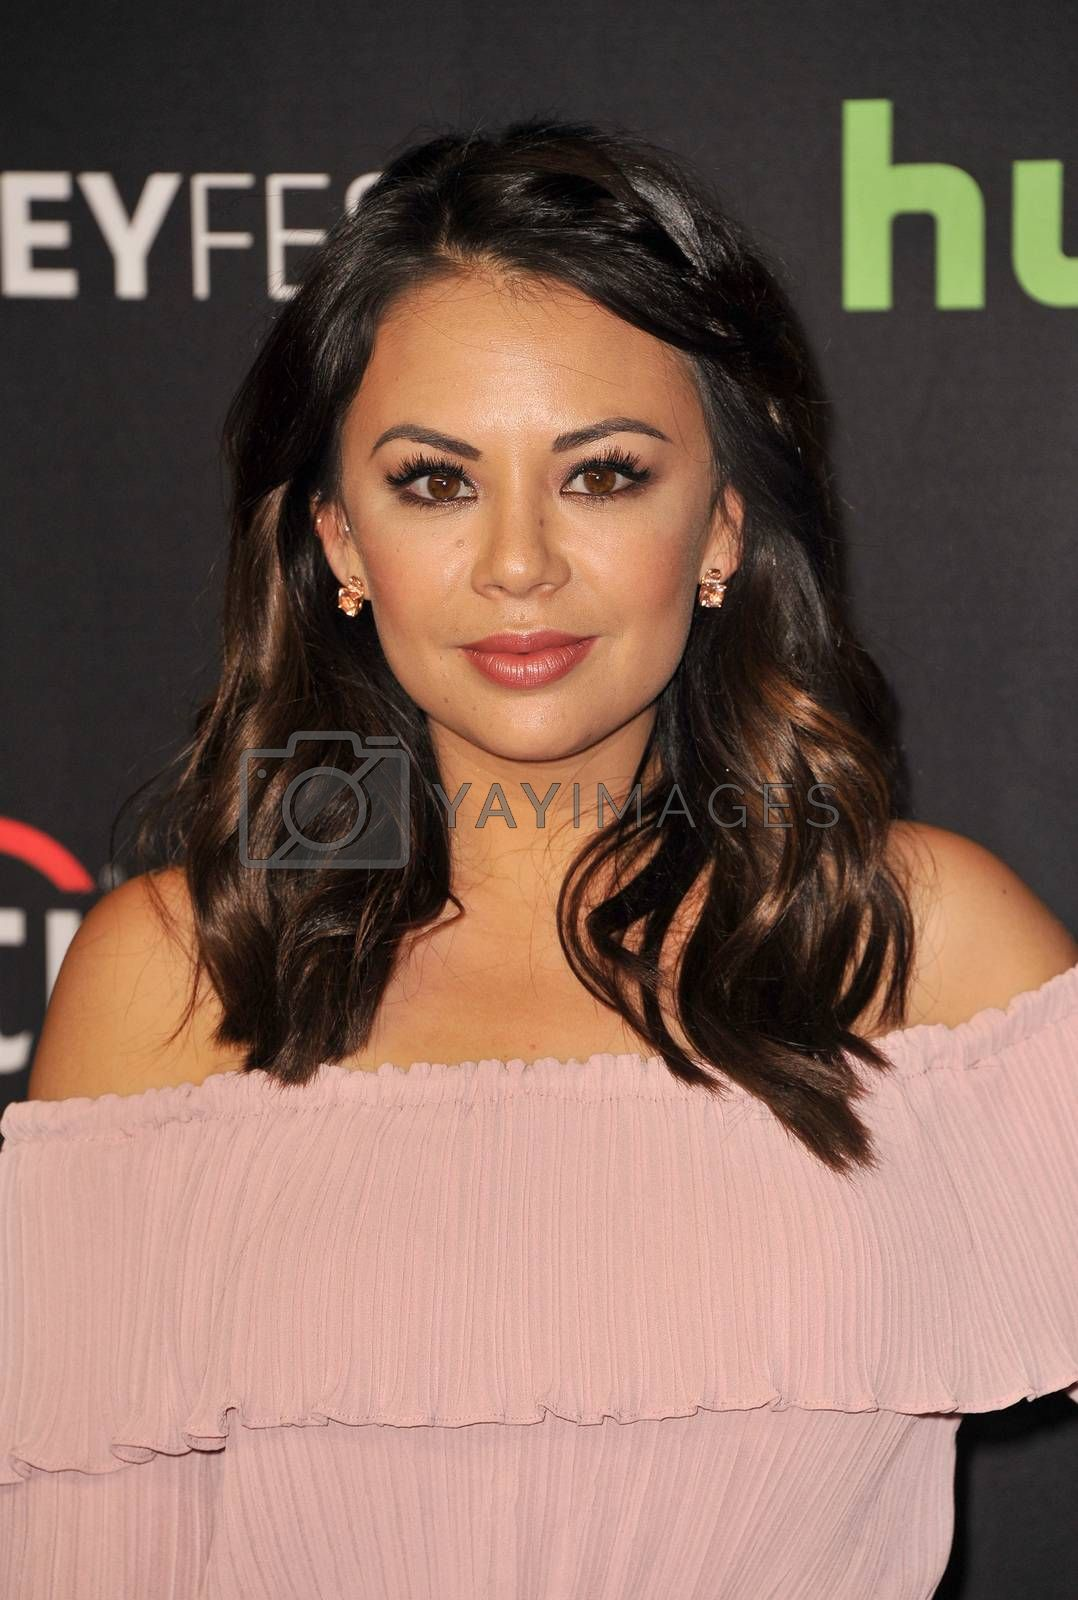 Janel Parrish by Lumeimages